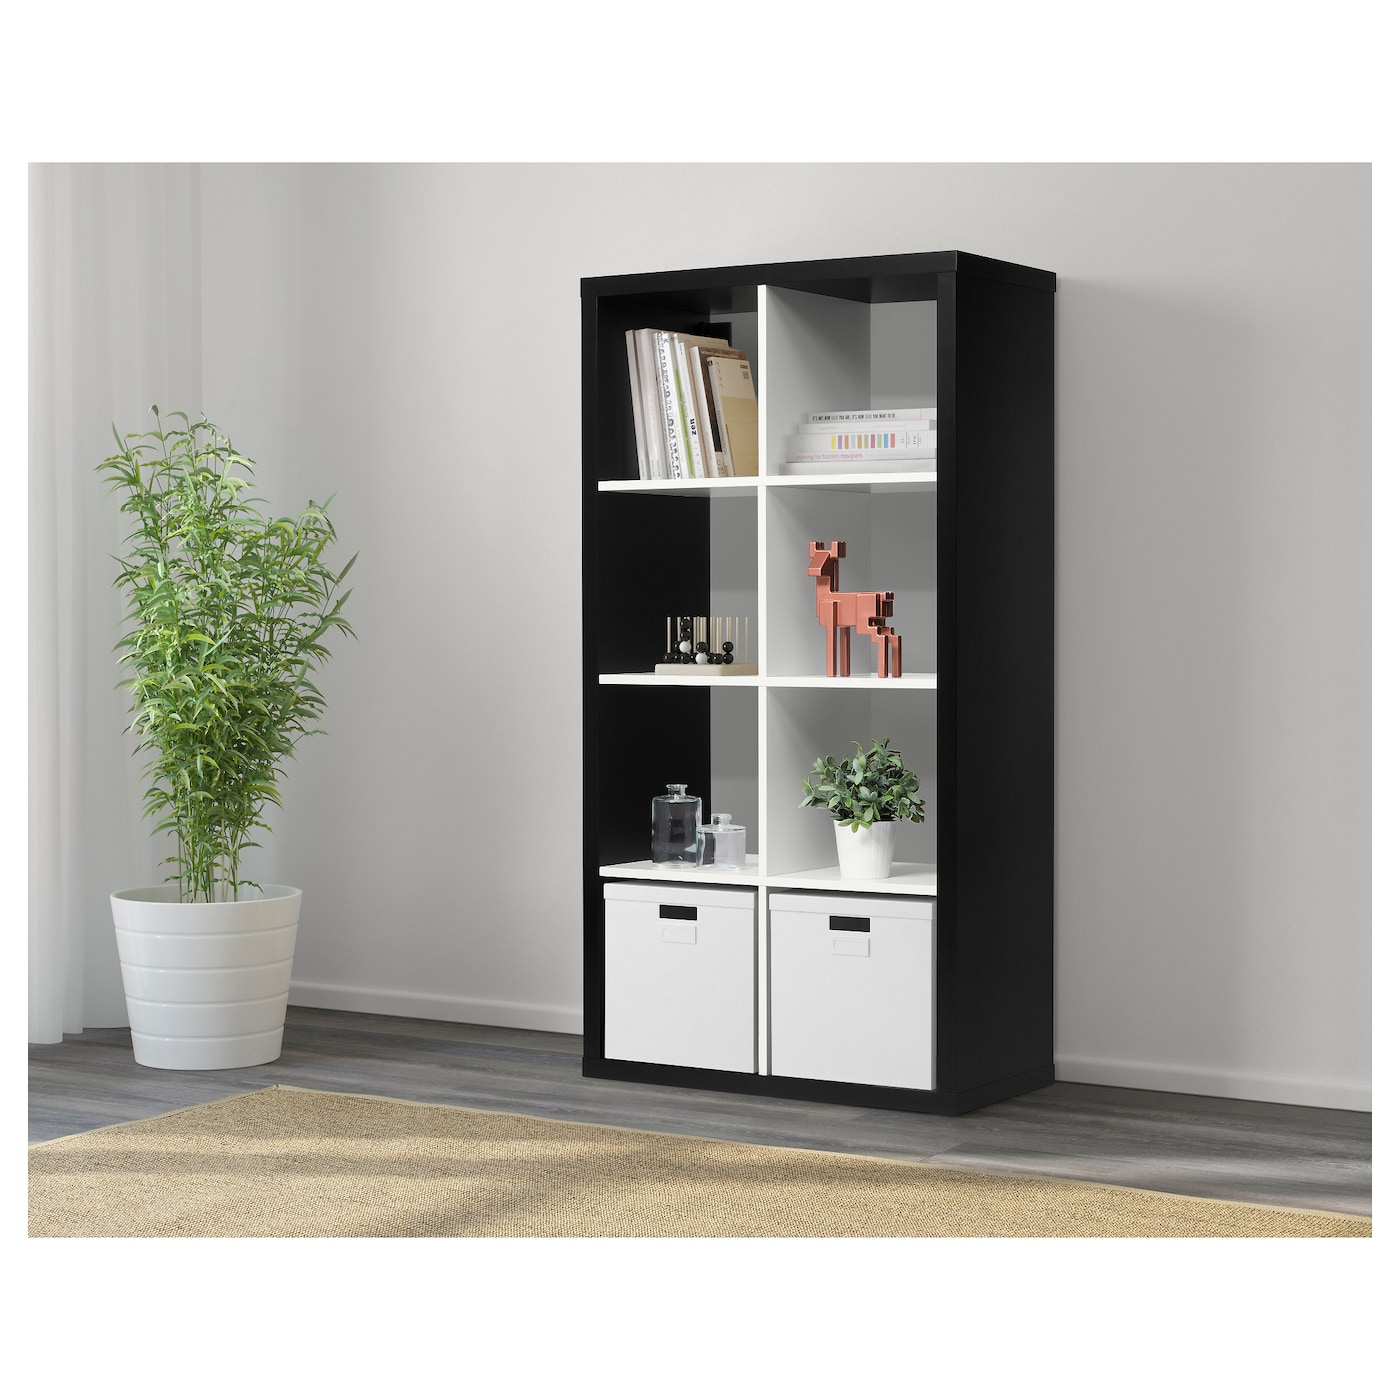 kallax shelving unit black white 77 x 147 cm ikea. Black Bedroom Furniture Sets. Home Design Ideas